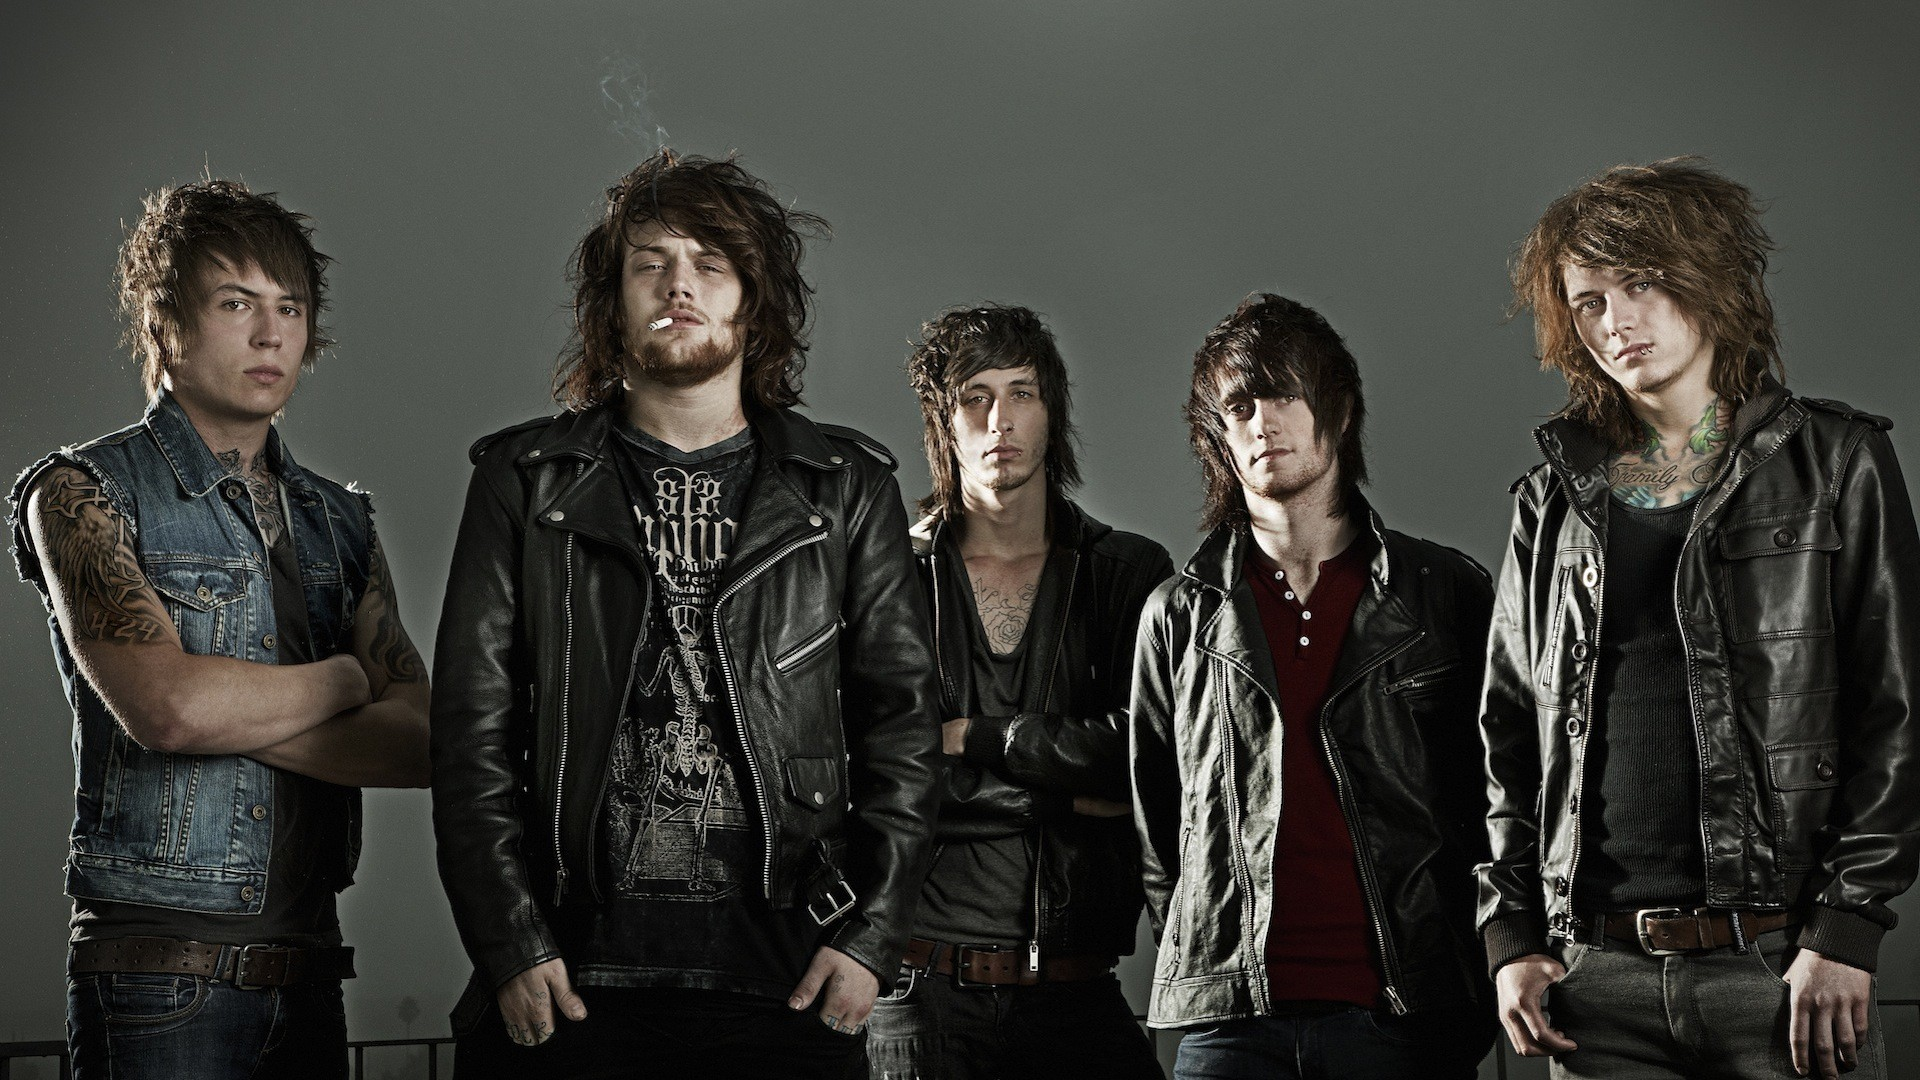 1920x1080 Asking Alexandria Wallpaper Metal Wallpapers Pinterest | Wallpapers 4k |  Pinterest | Alexandria and Wallpaper